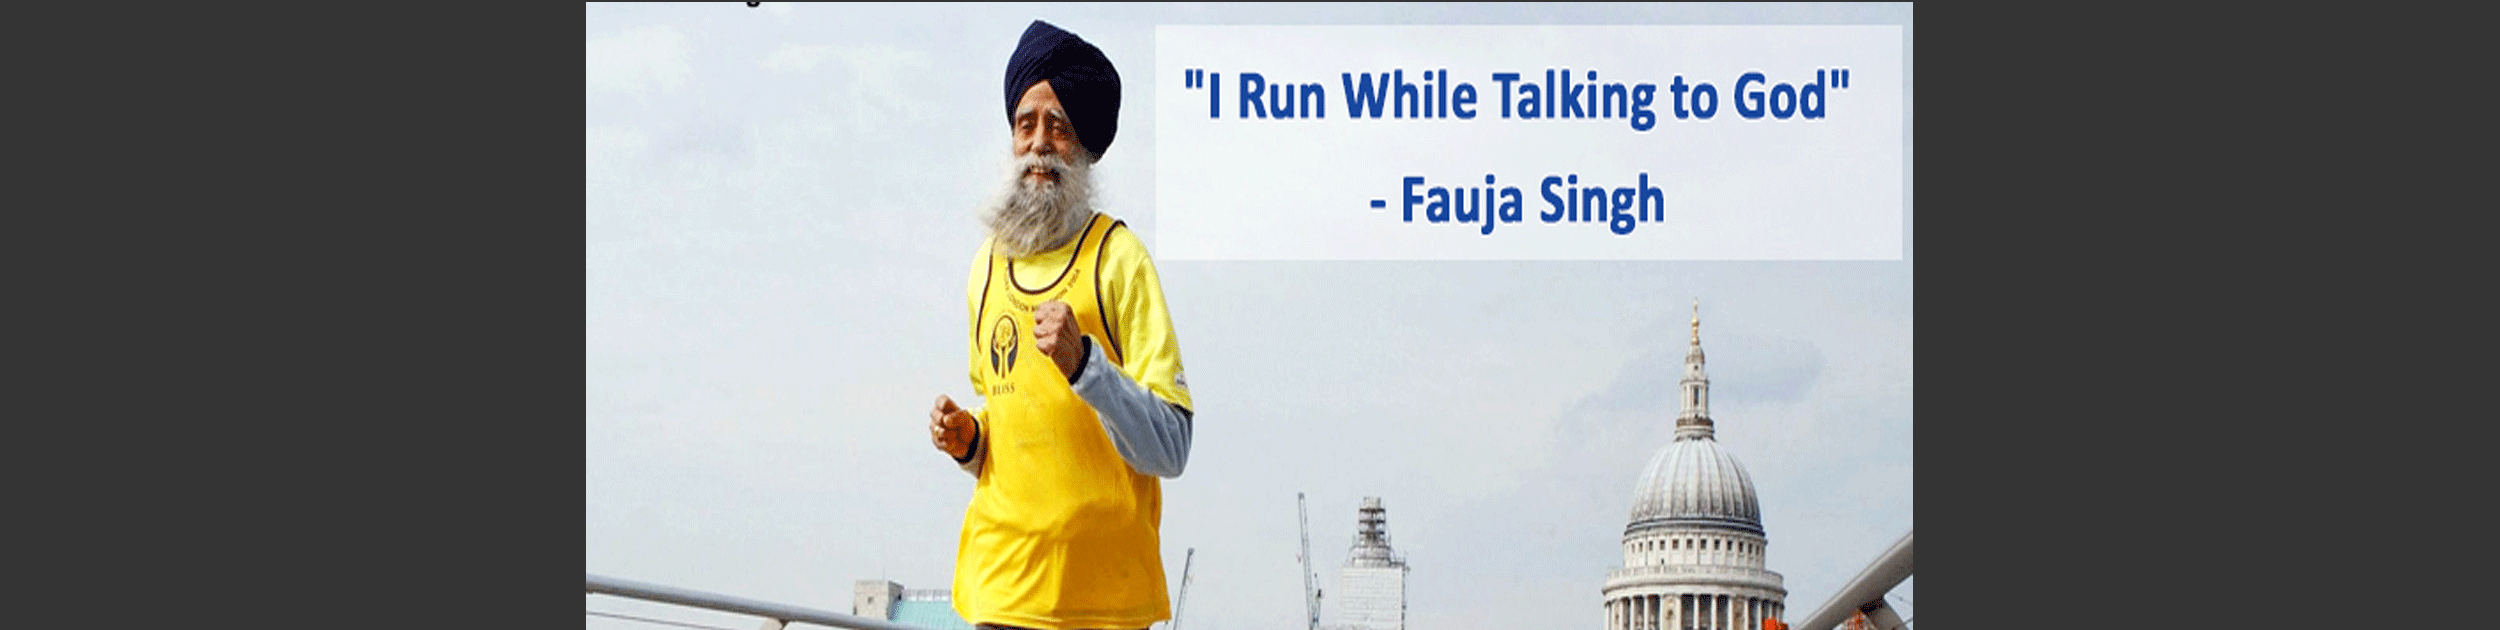 Sikh Marathon runner - 107 years old